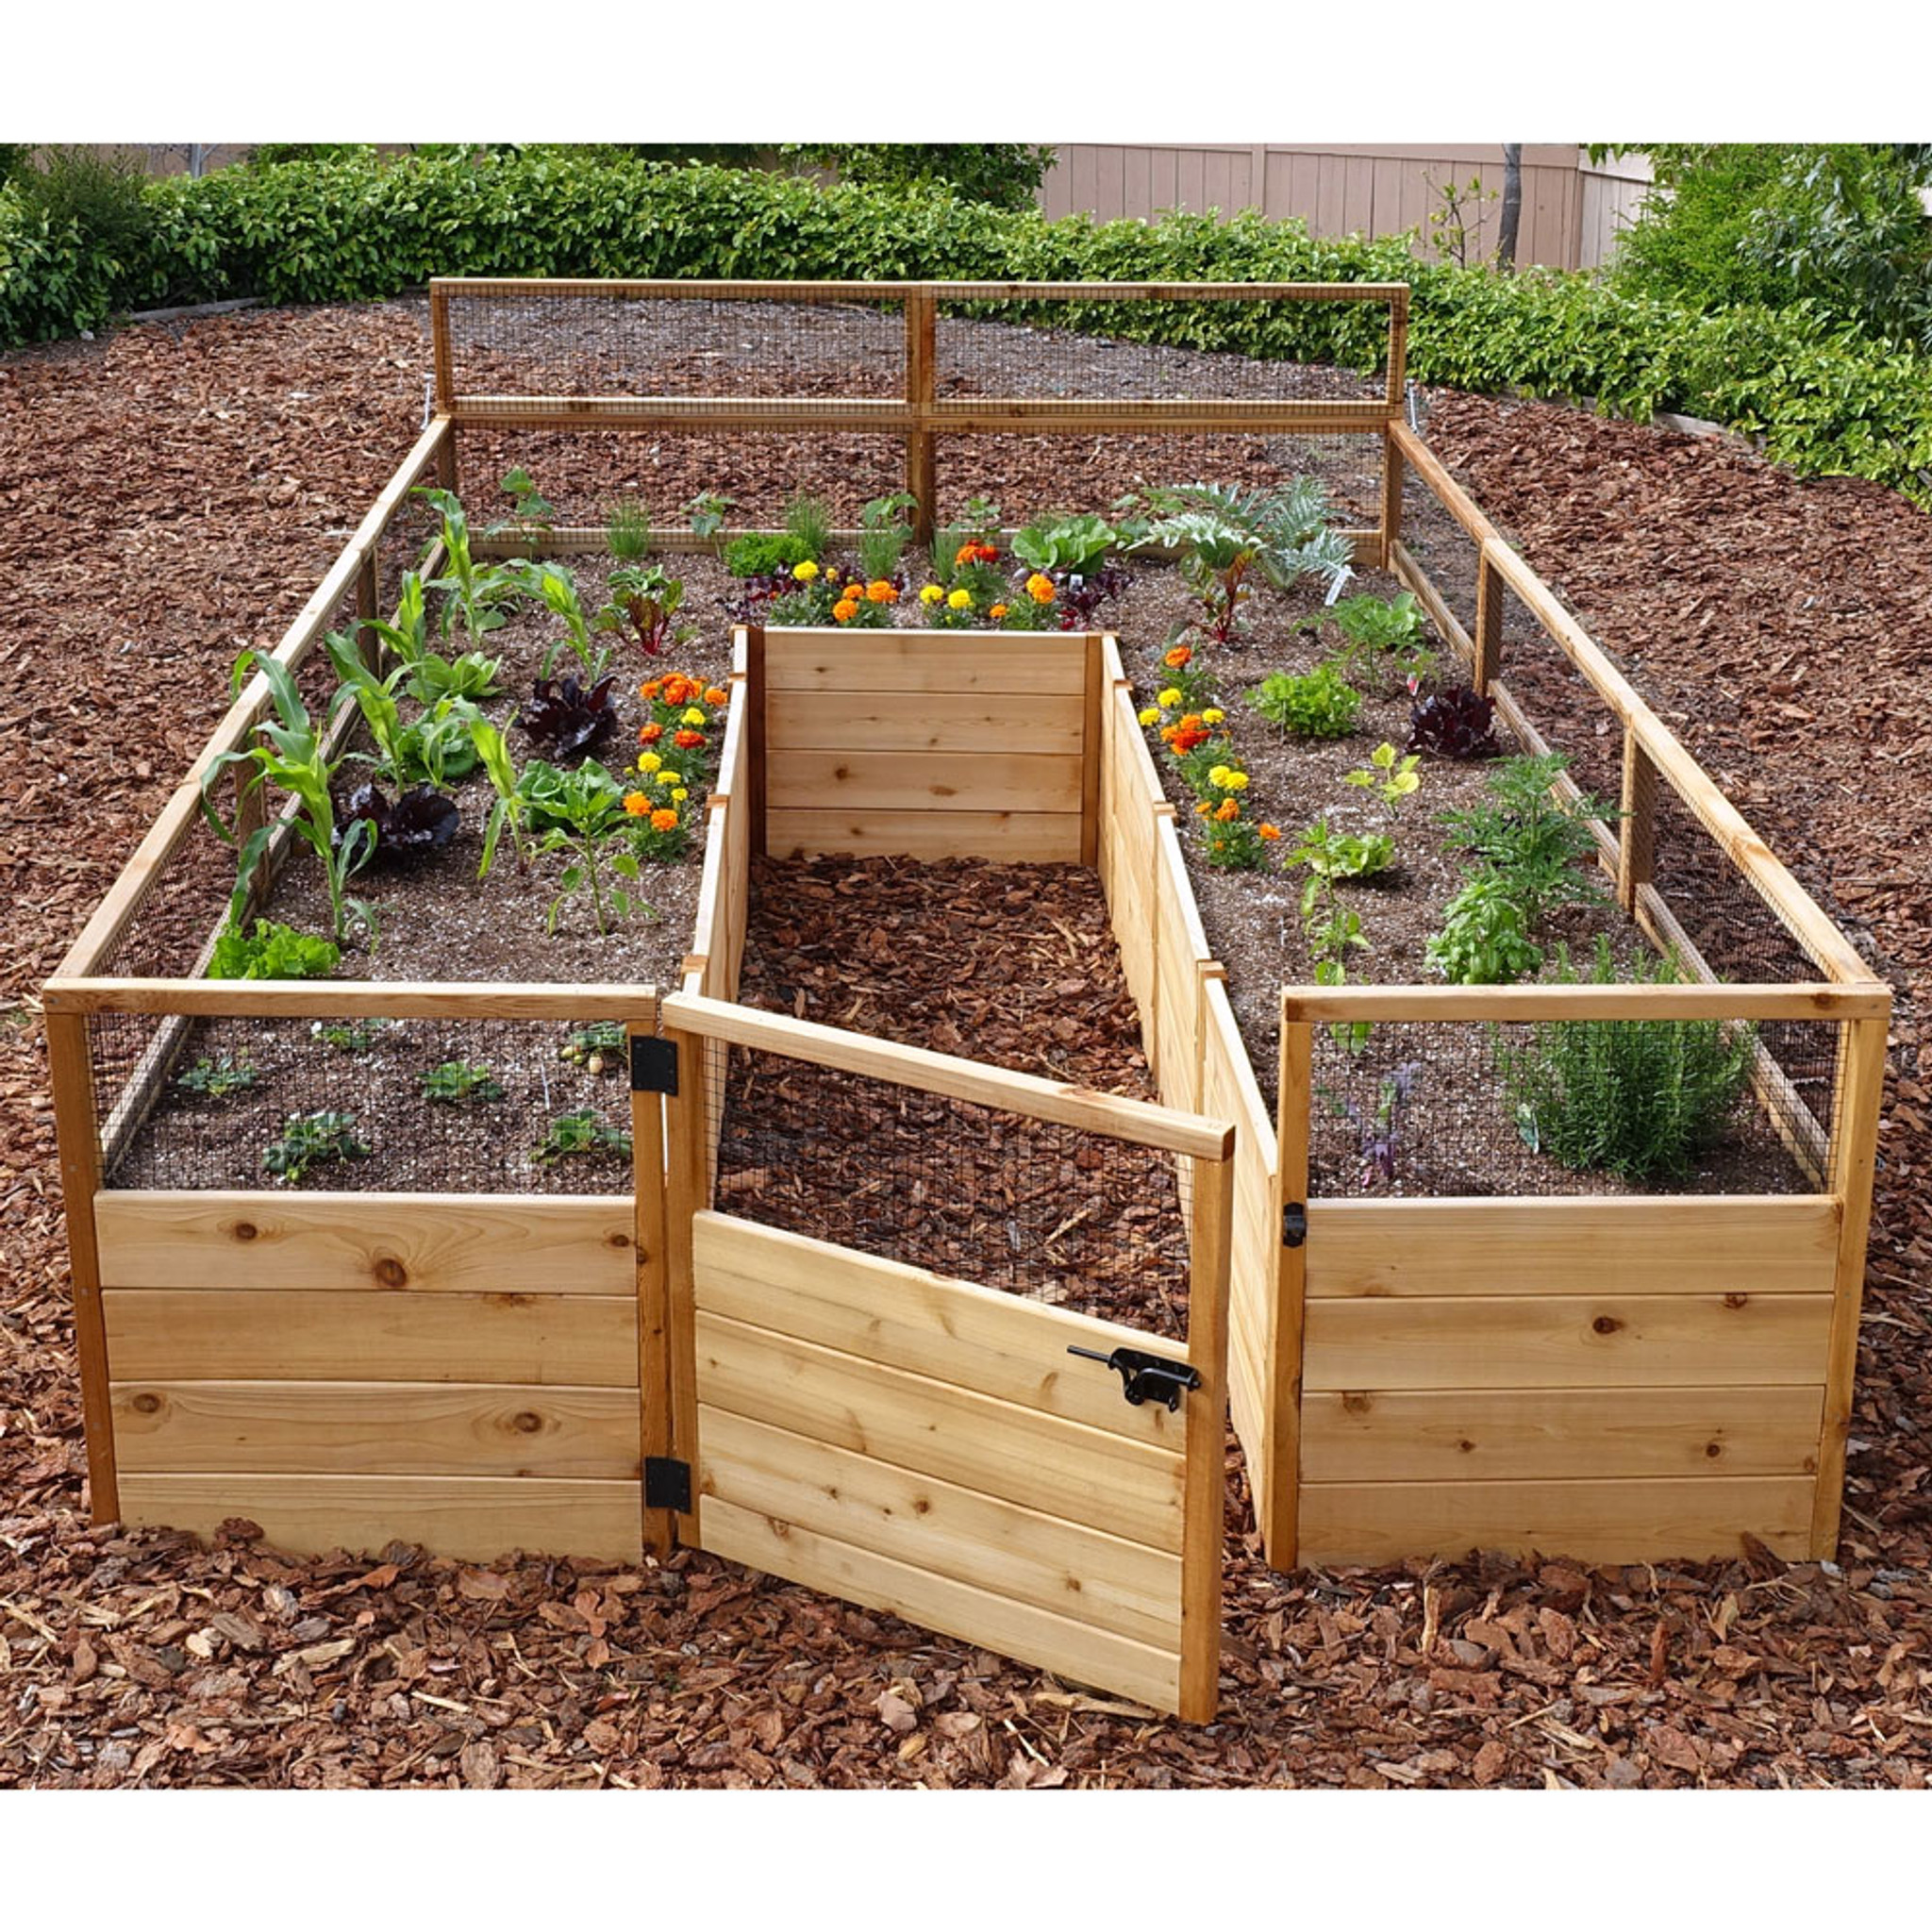 8 X 12 Cedar Complete Raised Garden Bed Kit Eartheasy Com